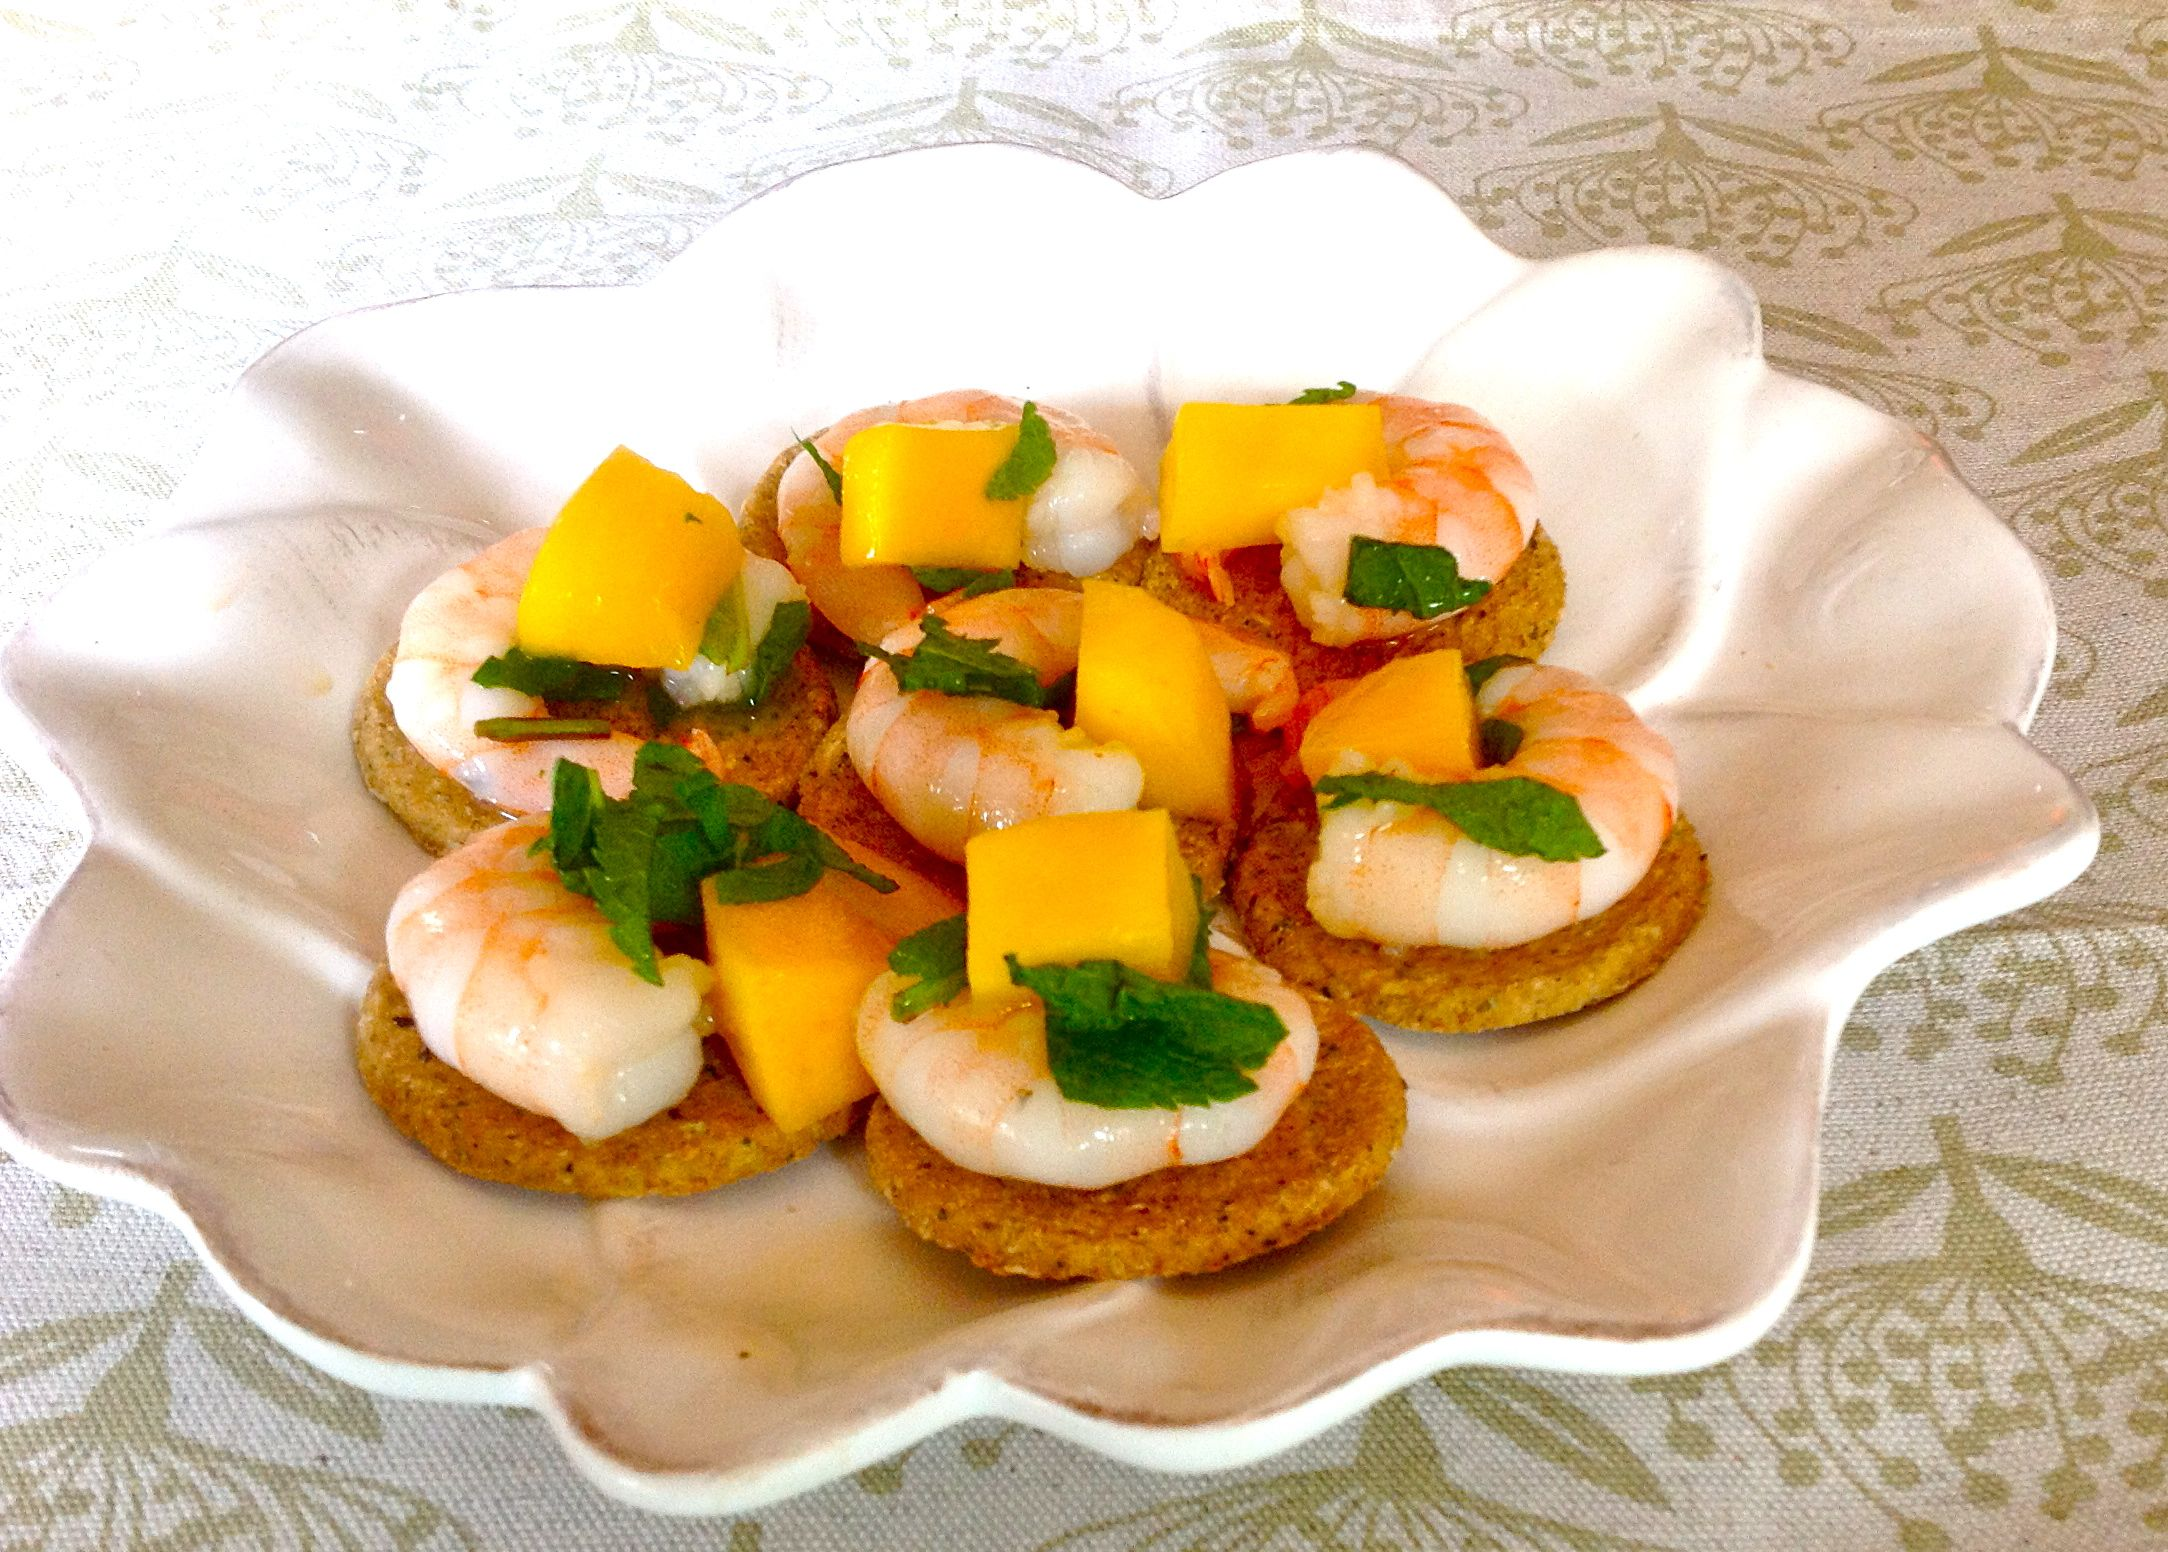 Recipes really easy ideas for canapes eating covent garden for Canape ingredients